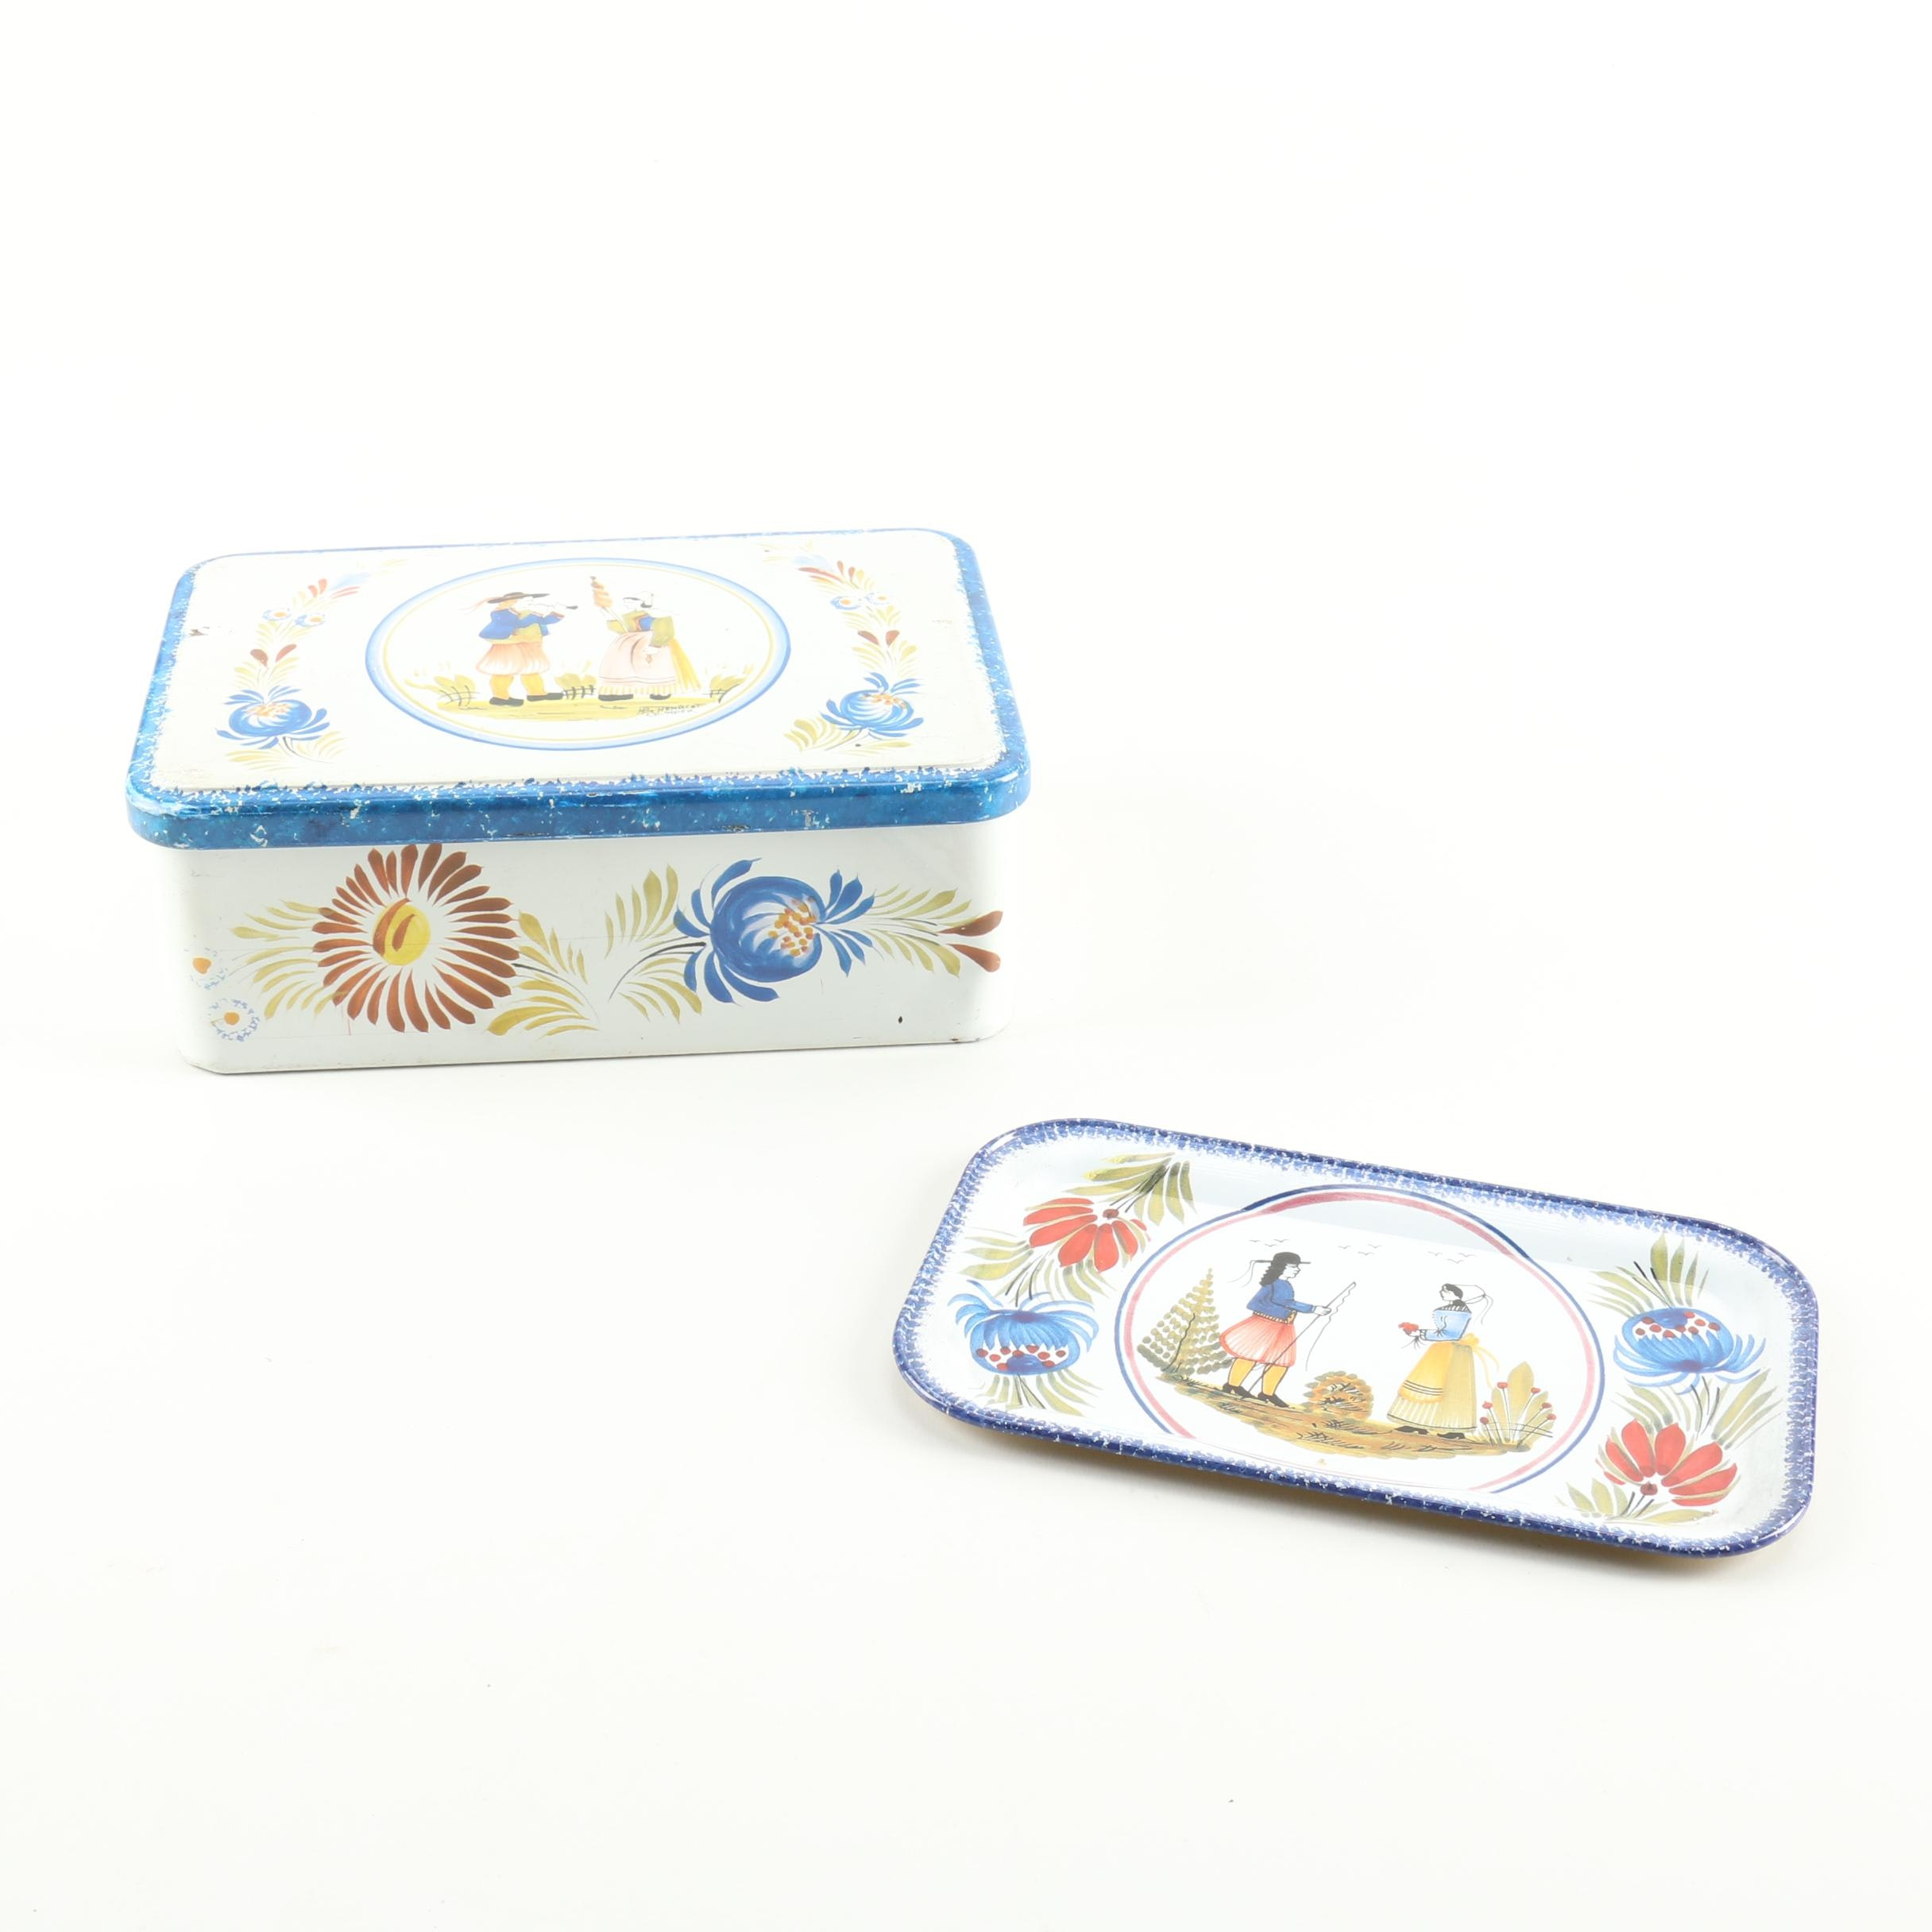 Massilly France Tin Box and Plate